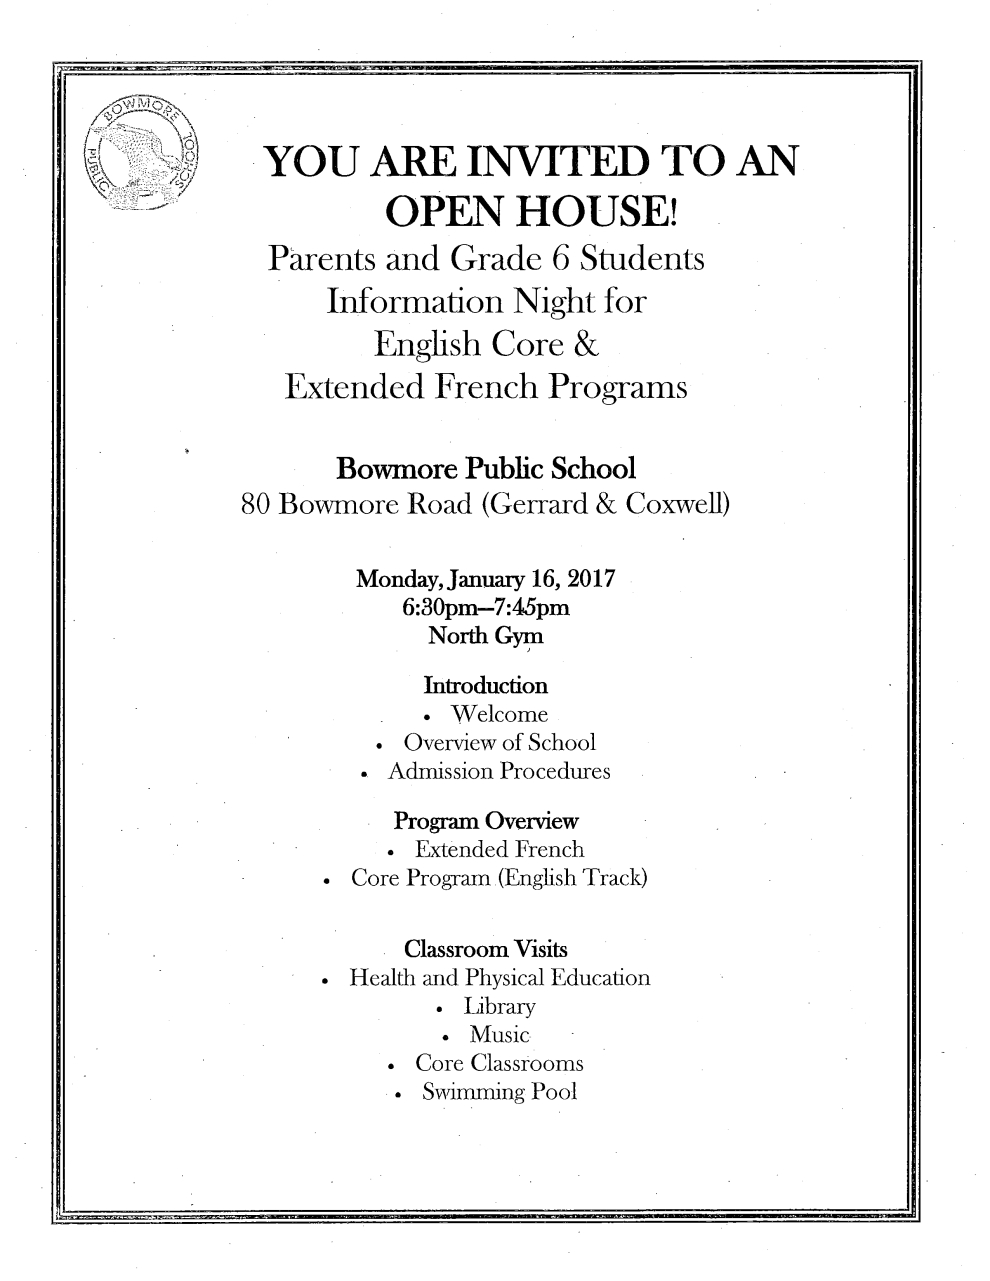 YOU ARE INVITED TO AN OPEN HOUSE! Parents and Grade 6 Students Information Night for English Core & Extended French Programs Bowmore Public School 80 Bowmore Road (Gerrard & Coxwell) Monday,January 16,2017 6:30pm-7:45pm North Gym Introduction * Welcome * Overview of School * Admission Procedures * Program Overview * Extended French * Core Program English Track) Classroom Visits * Health and Physical Education * Library * Music * Core Classrooms * Swimming Pool